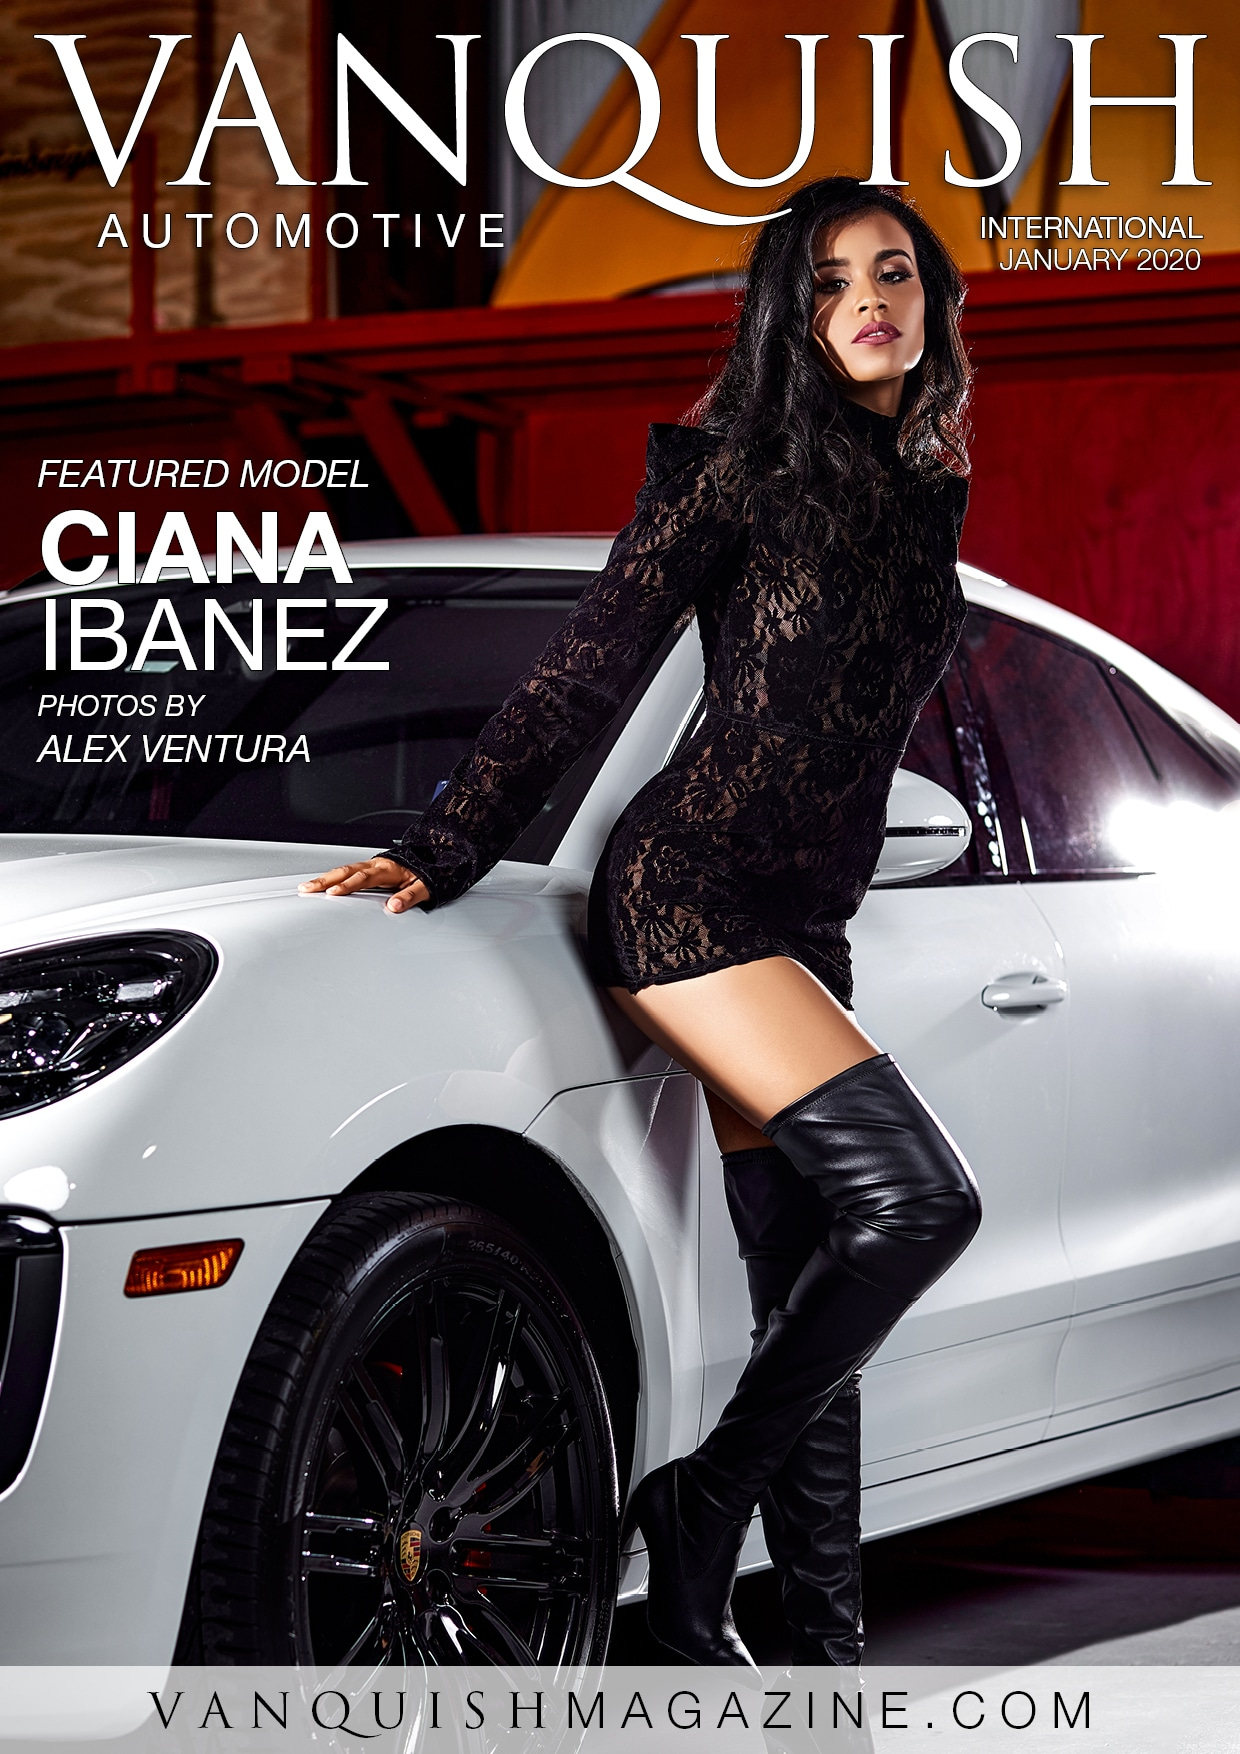 Vanquish Automotive – January 2020 – Ciana Ibanez